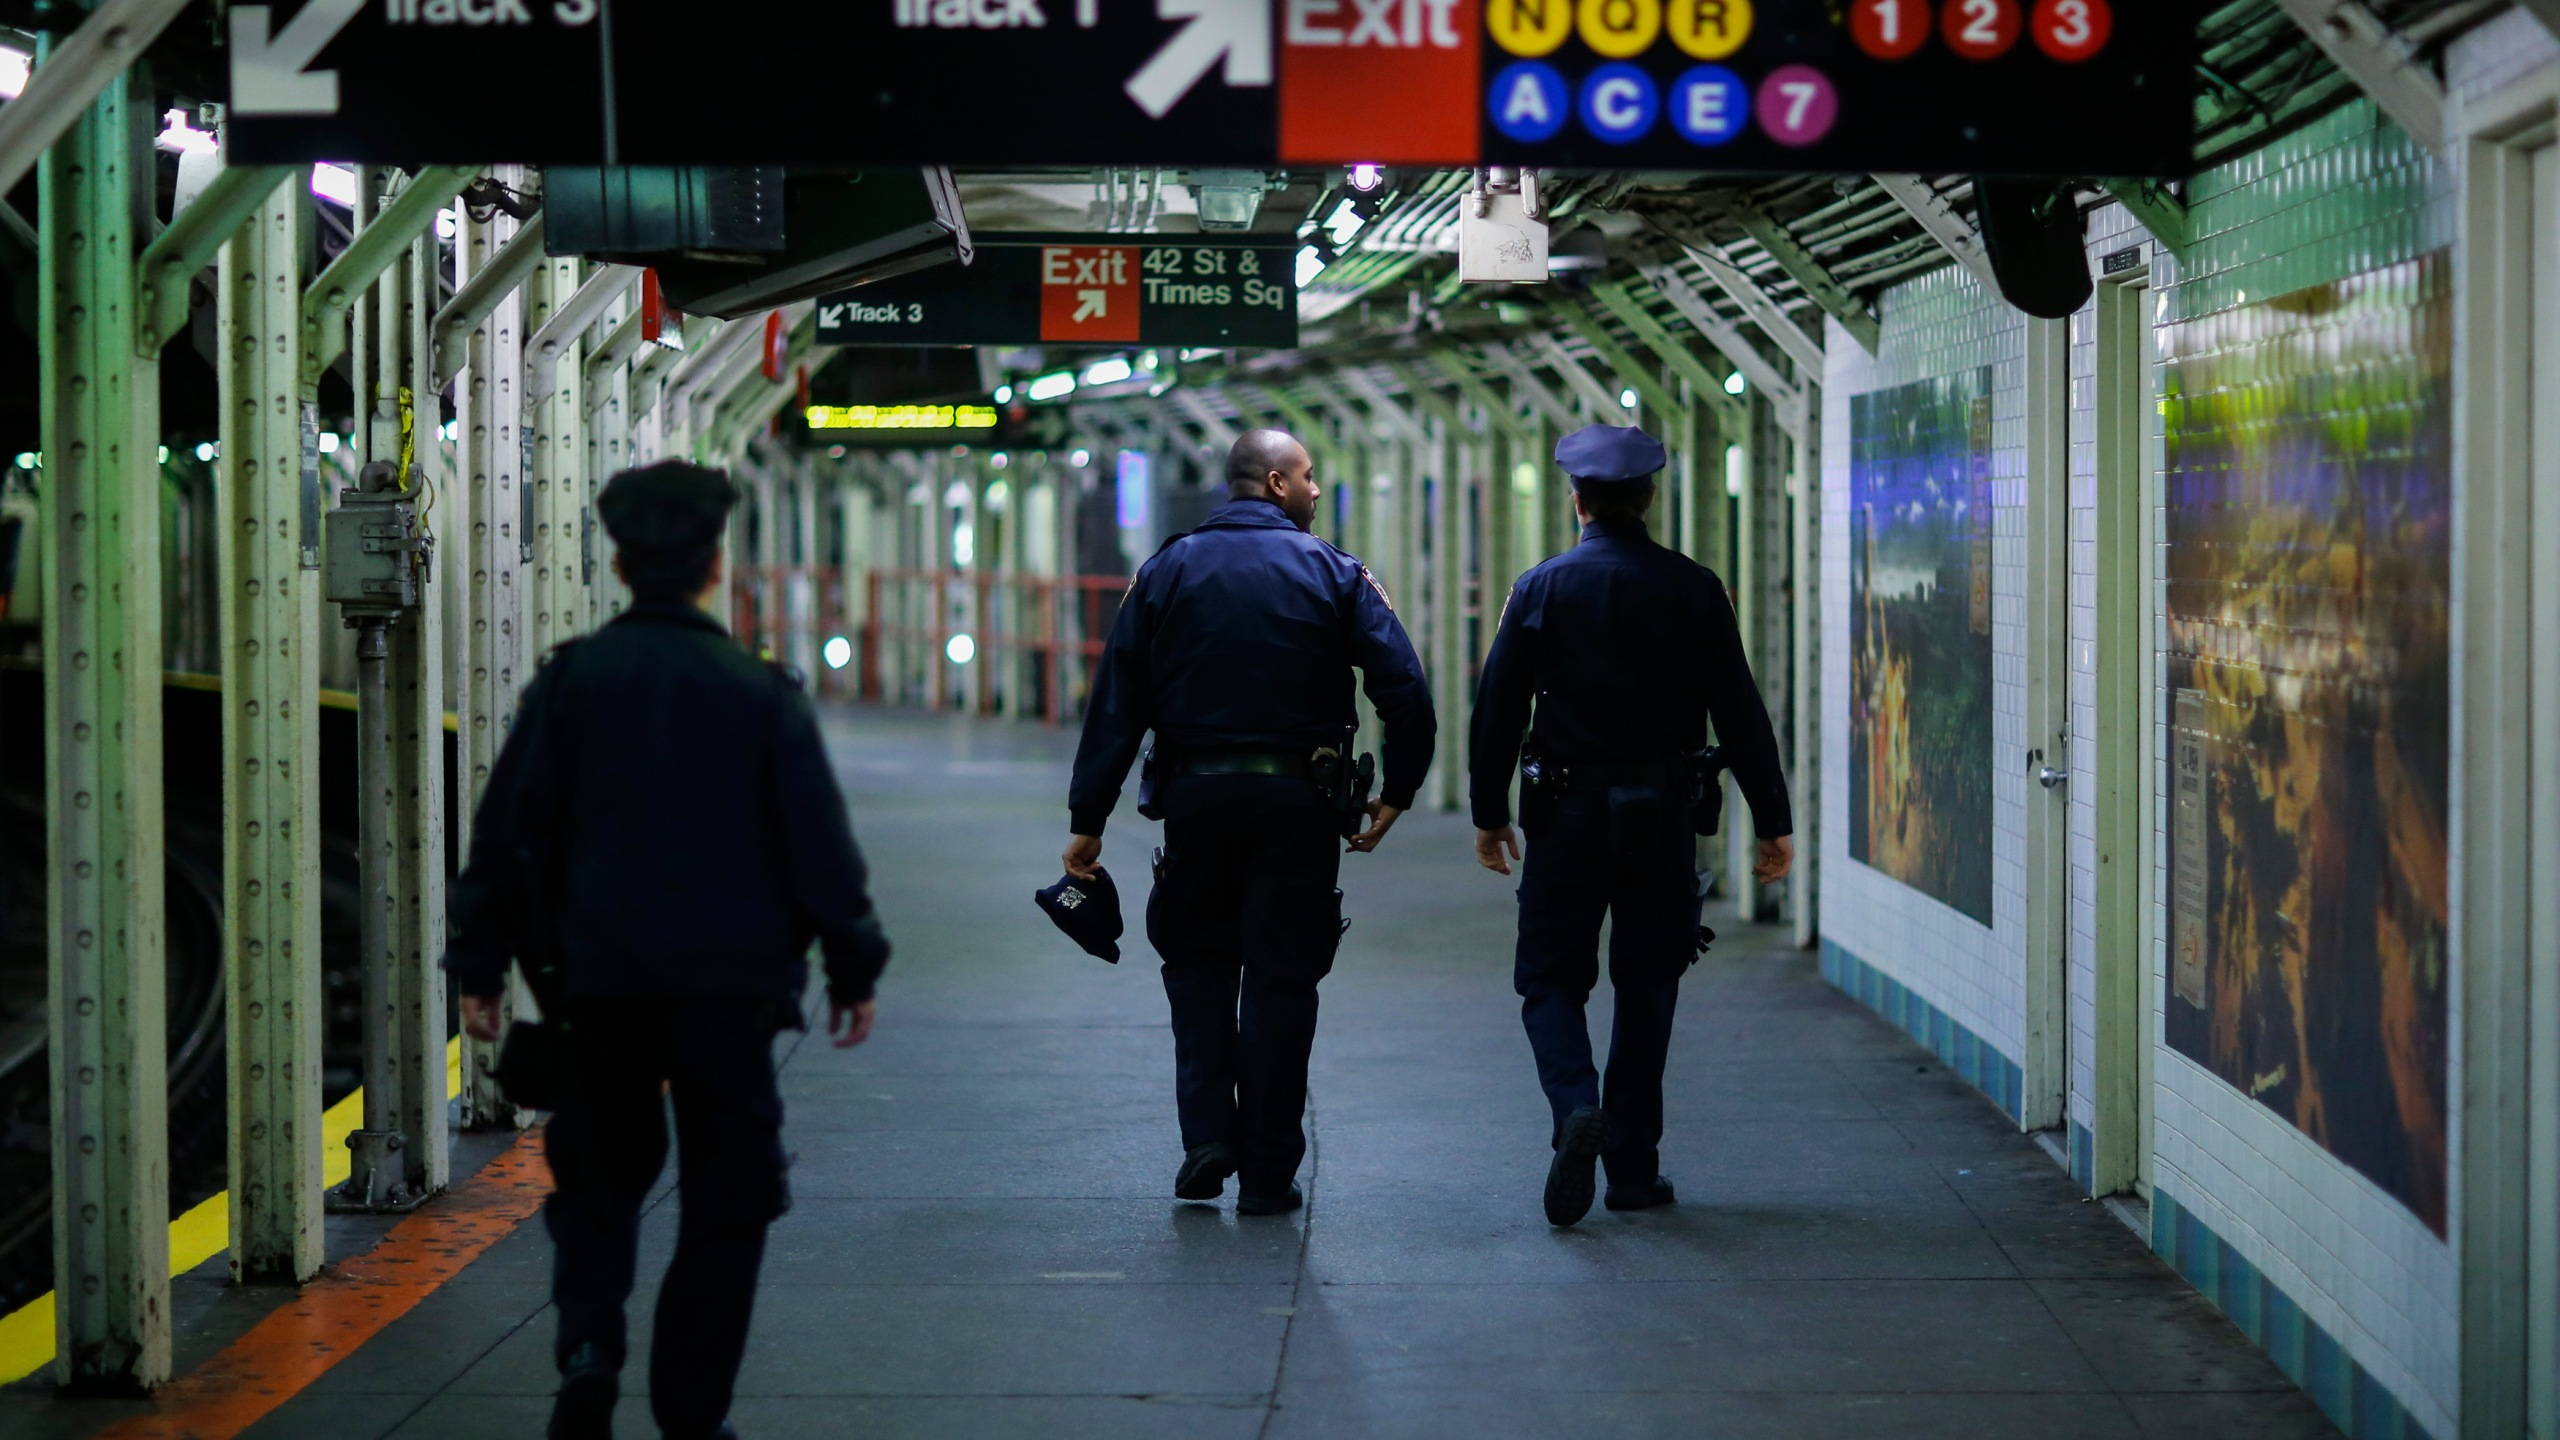 Police in Times Square subway station